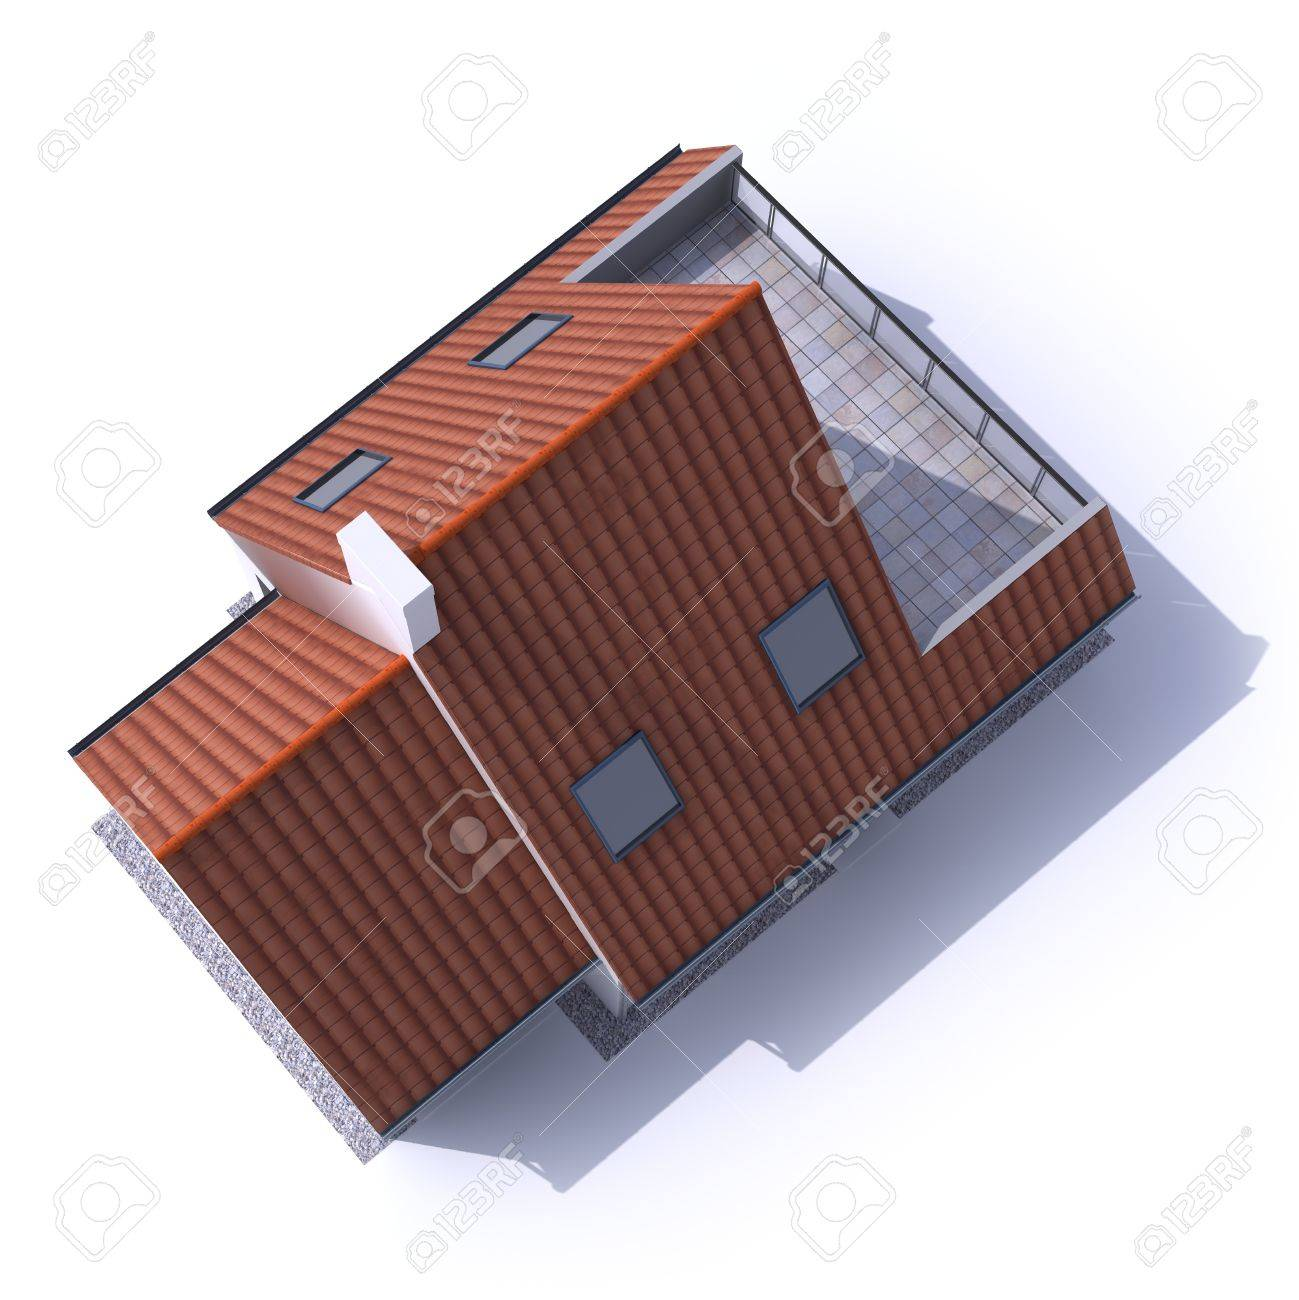 3D architecture model of a house aerial view Stock Photo - 13253561  sc 1 st  123RF Stock Photos & 3D Architecture Model Of A House Aerial View Stock Photo Picture ... memphite.com